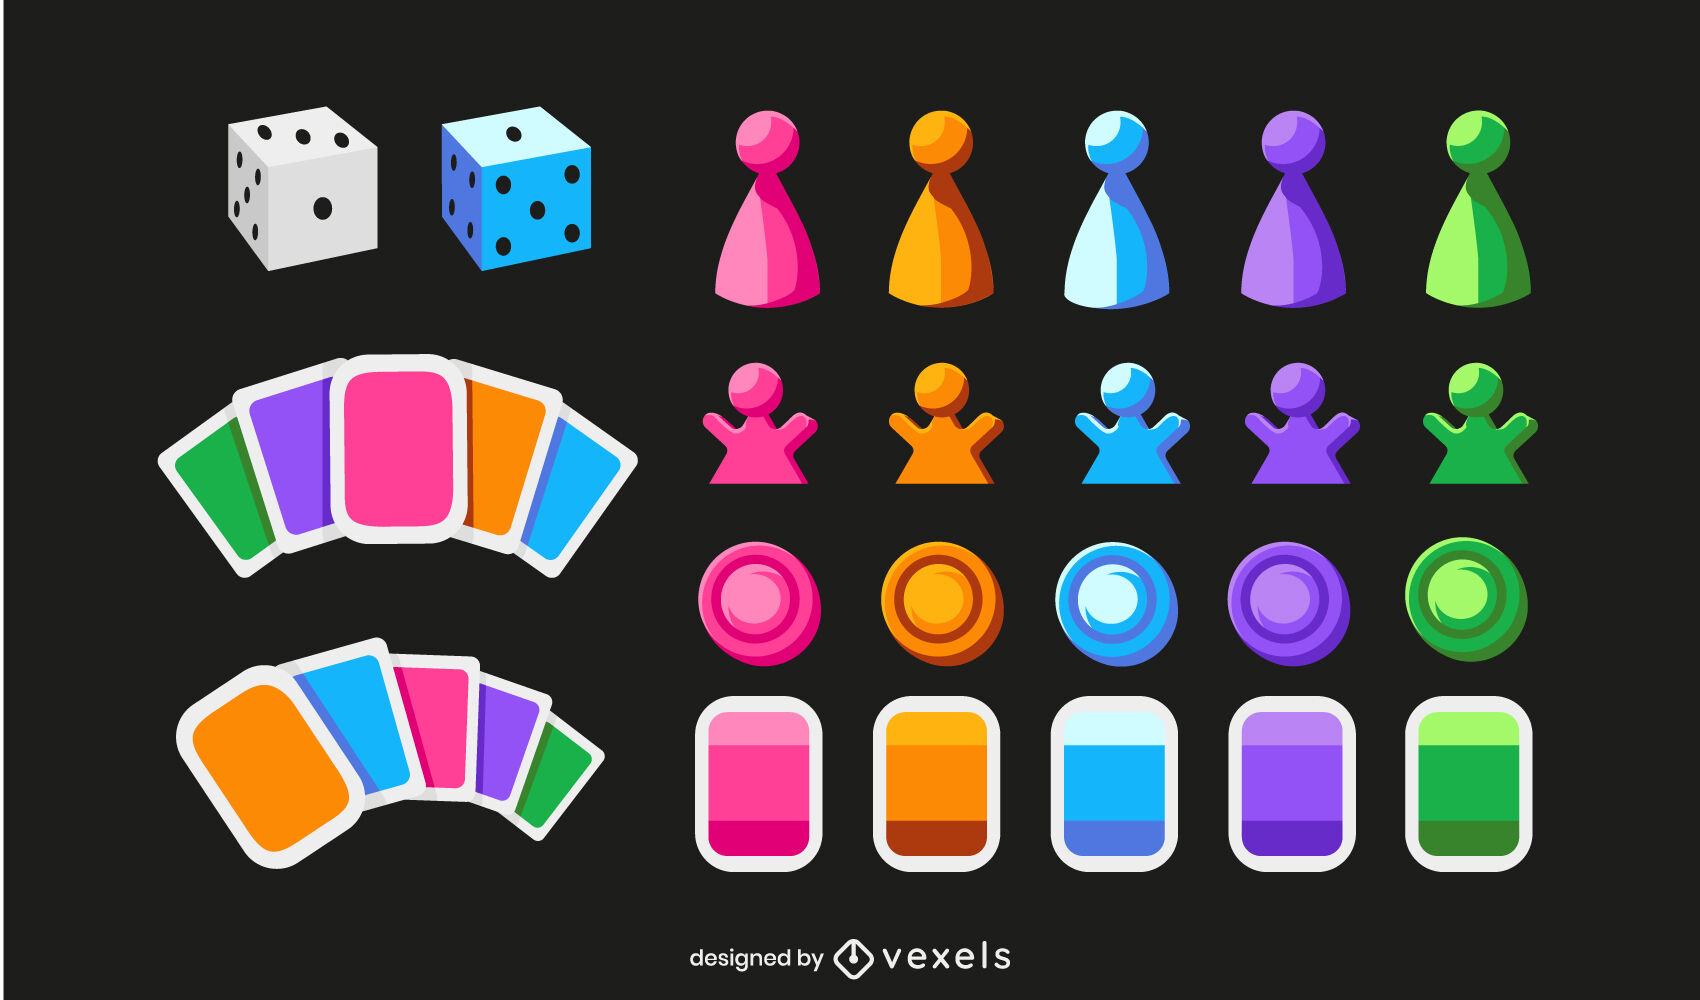 Board game pieces and cards hobby set